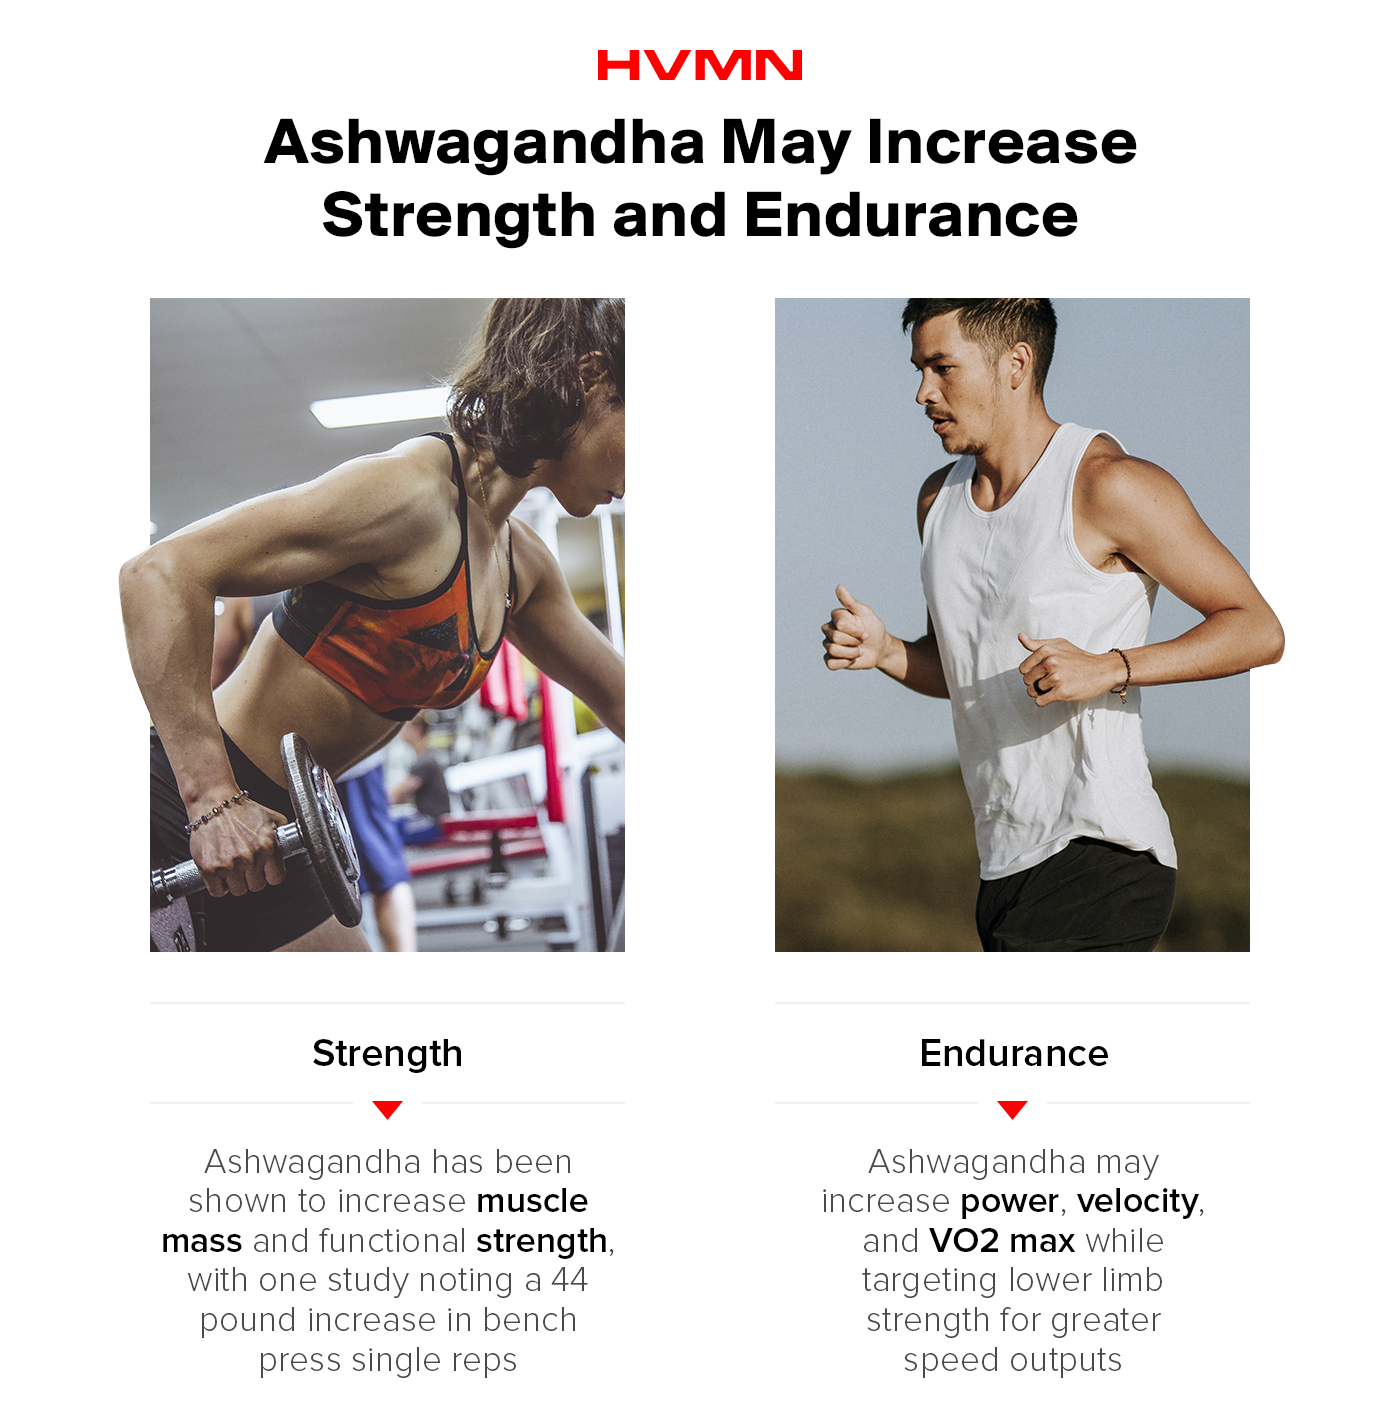 A female weight lifter doing a row, and a male runner on the trail, showing how ashwagandha may increase strength and endurance